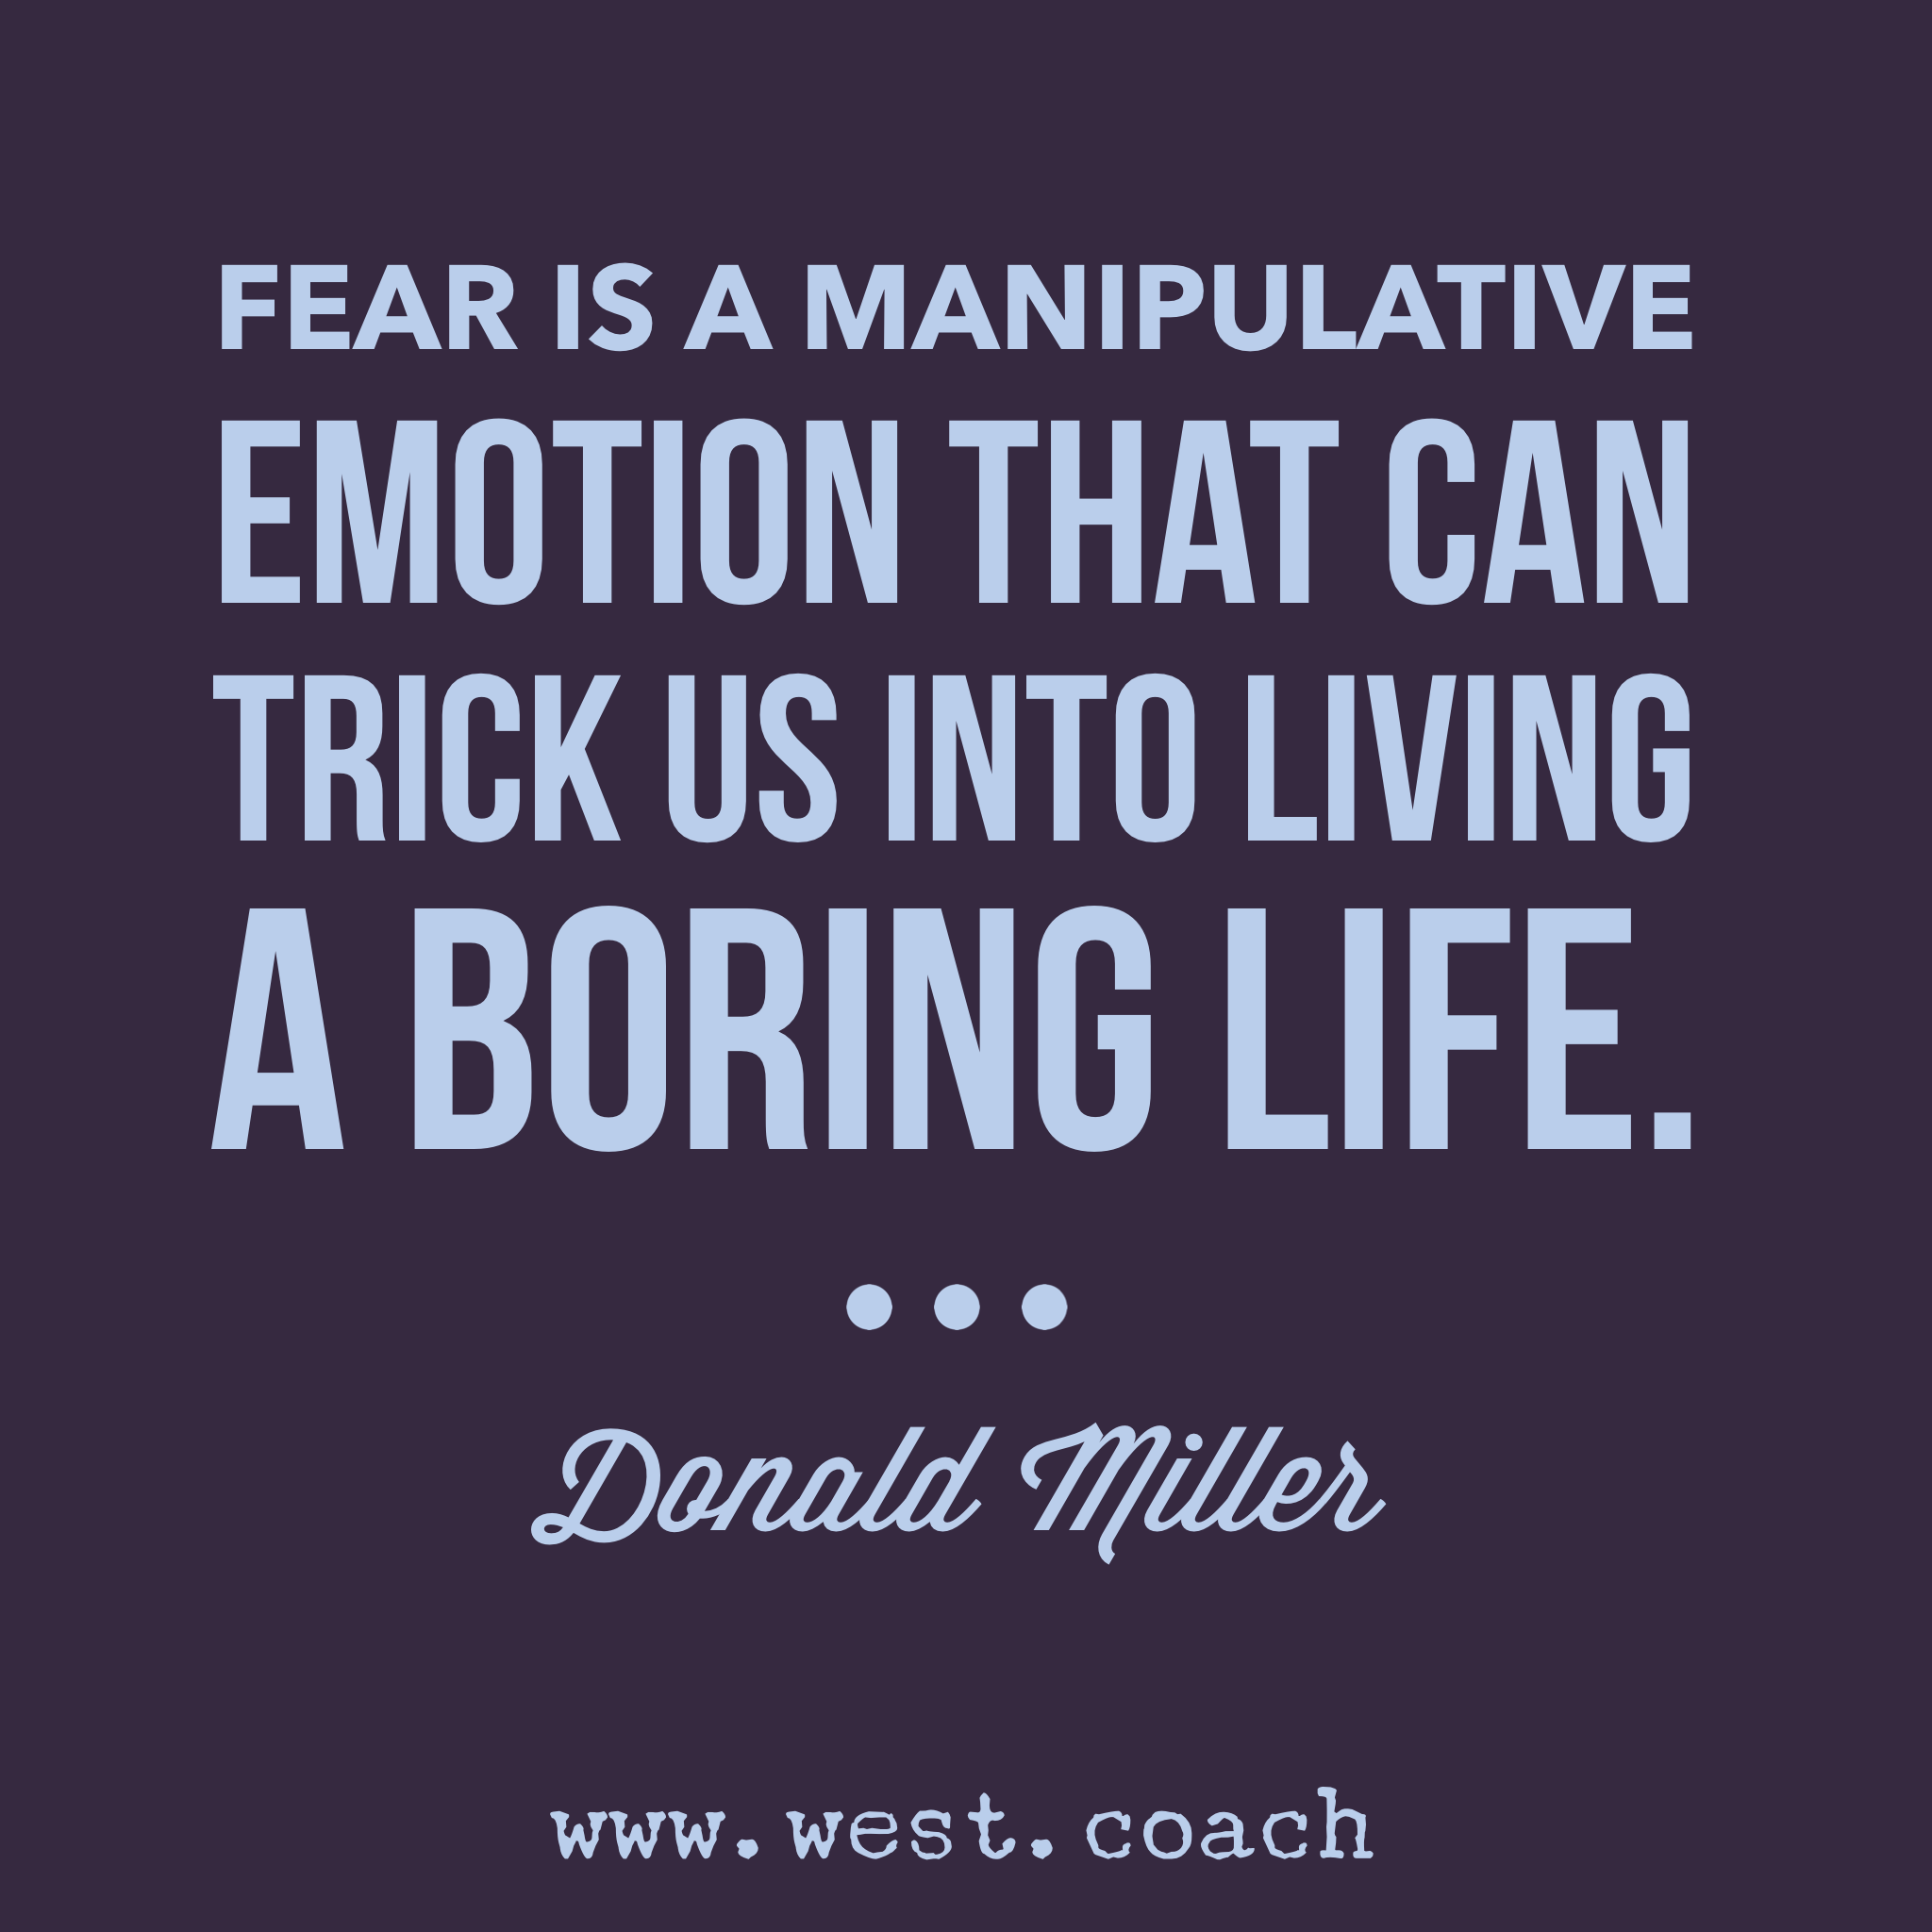 Daily Life Inspirational Quotes Fear Is A Manipulative Emotion That Can Trick Us Into Living A